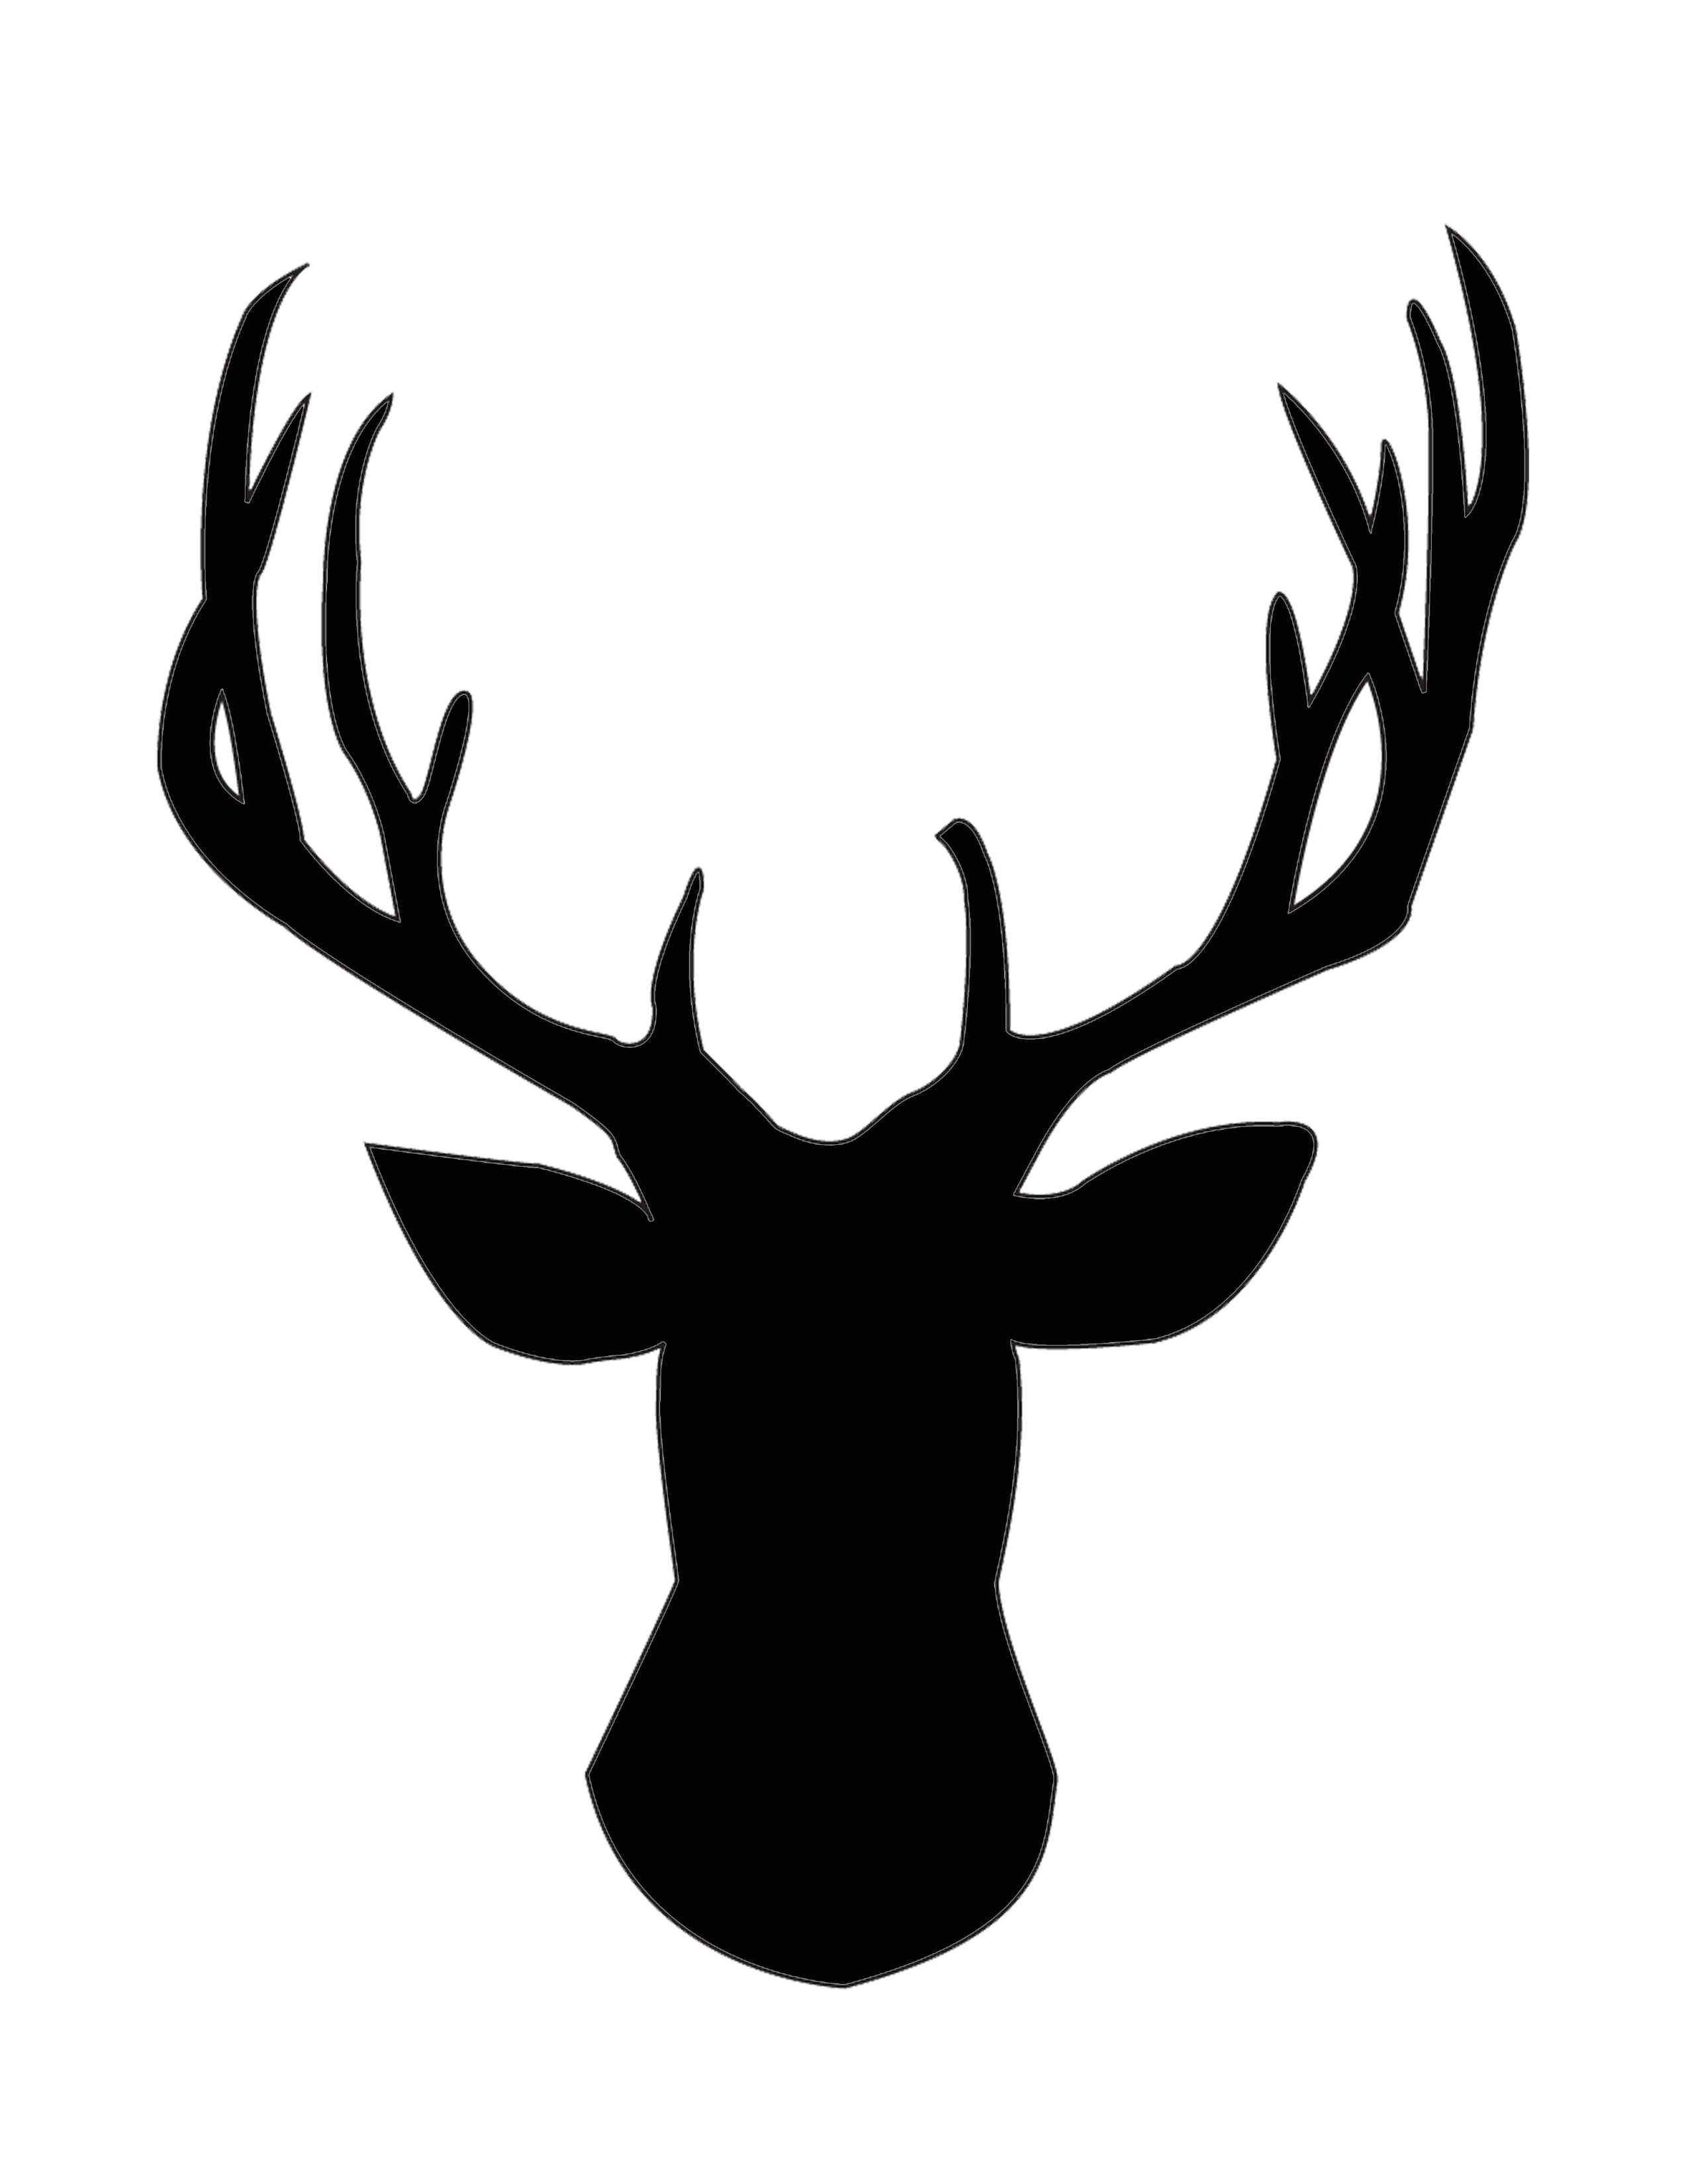 silhouette of a buck buck silhouette clipart 20 free cliparts download images of buck a silhouette